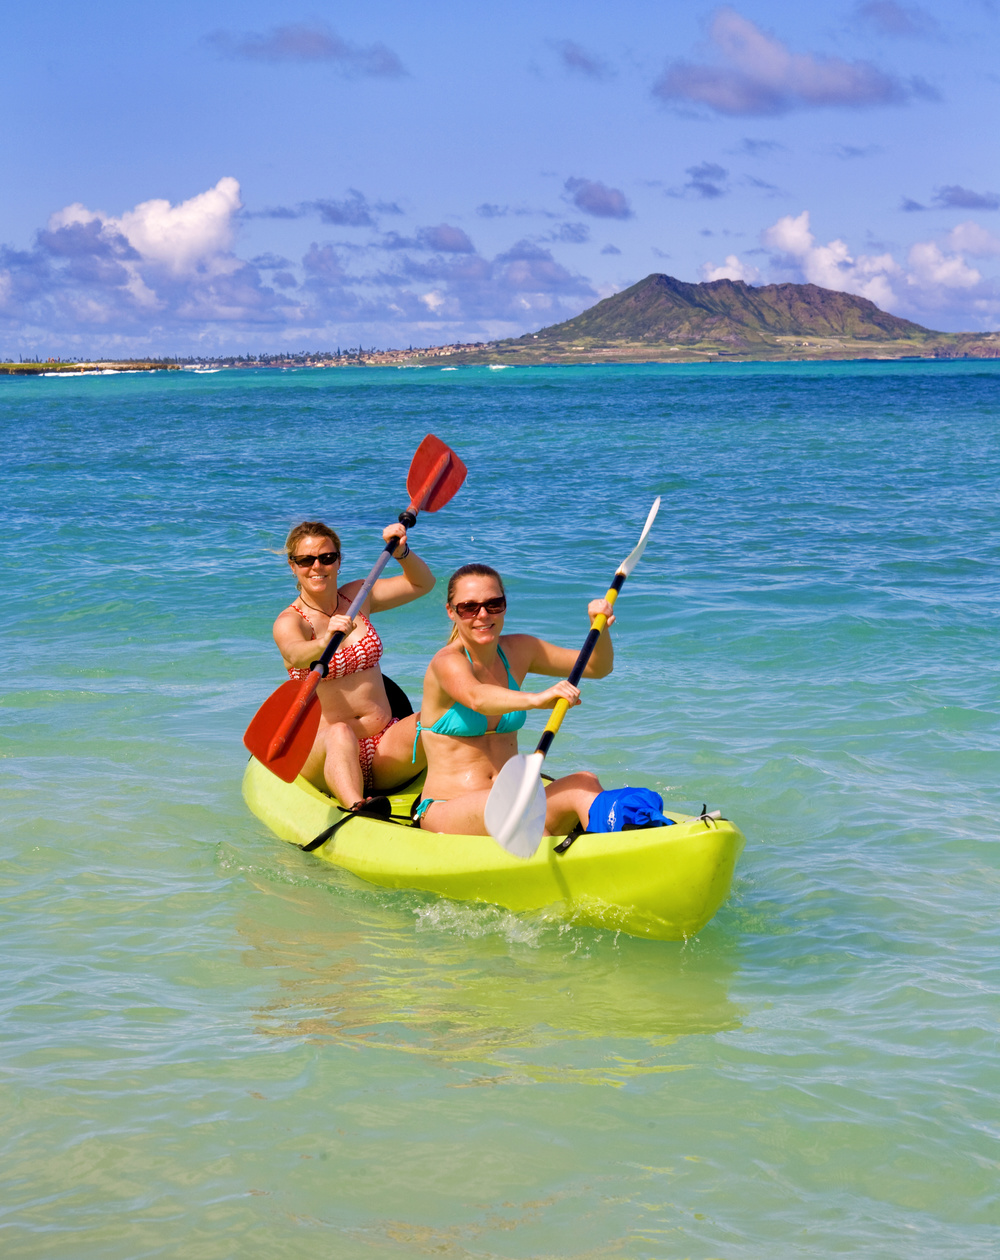 Maui is great for an active vacation - surf, hike, kayak or just lay on the beach.